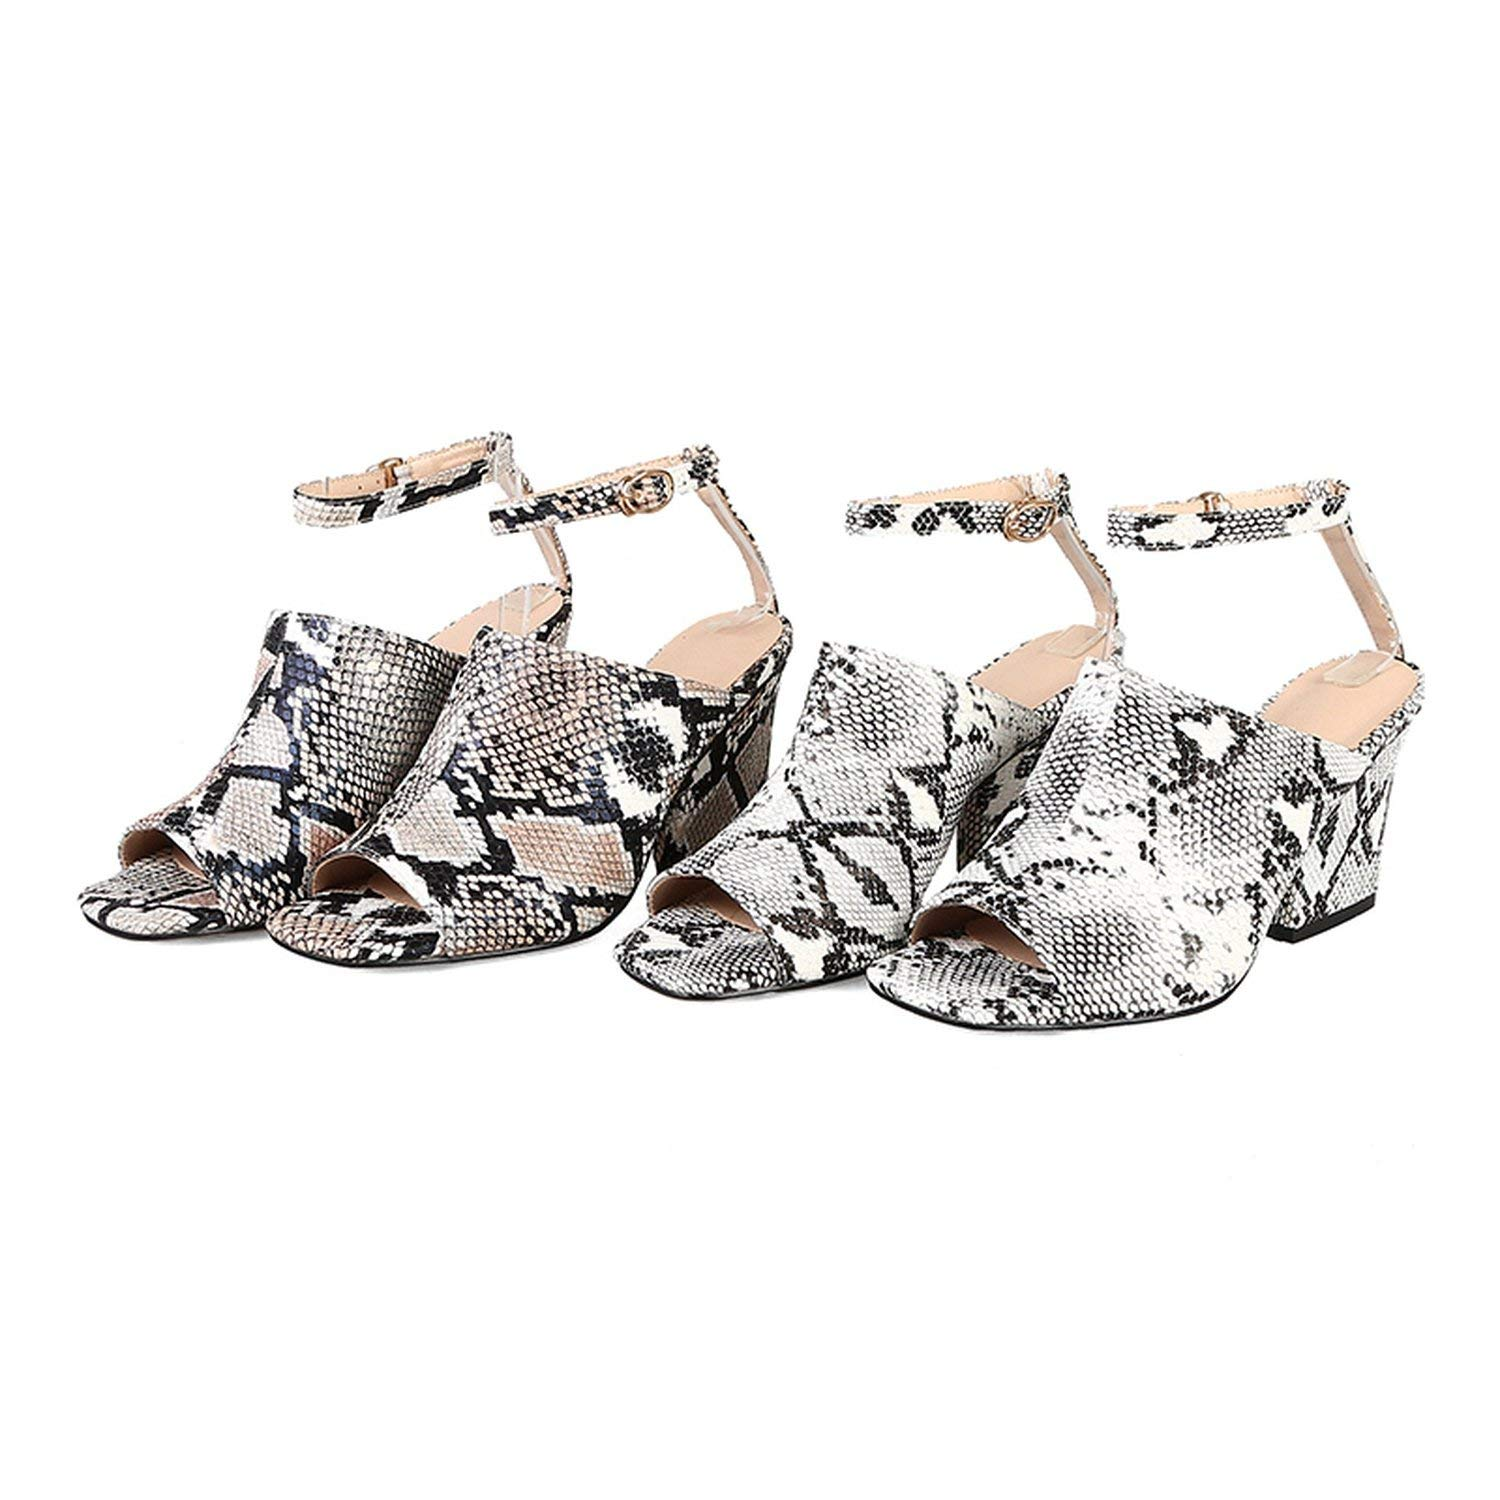 shine-hearty Big Size 32-44 Snake Veins Ankle Strap High Heels Shoes Woman Summer Sandals,White,6